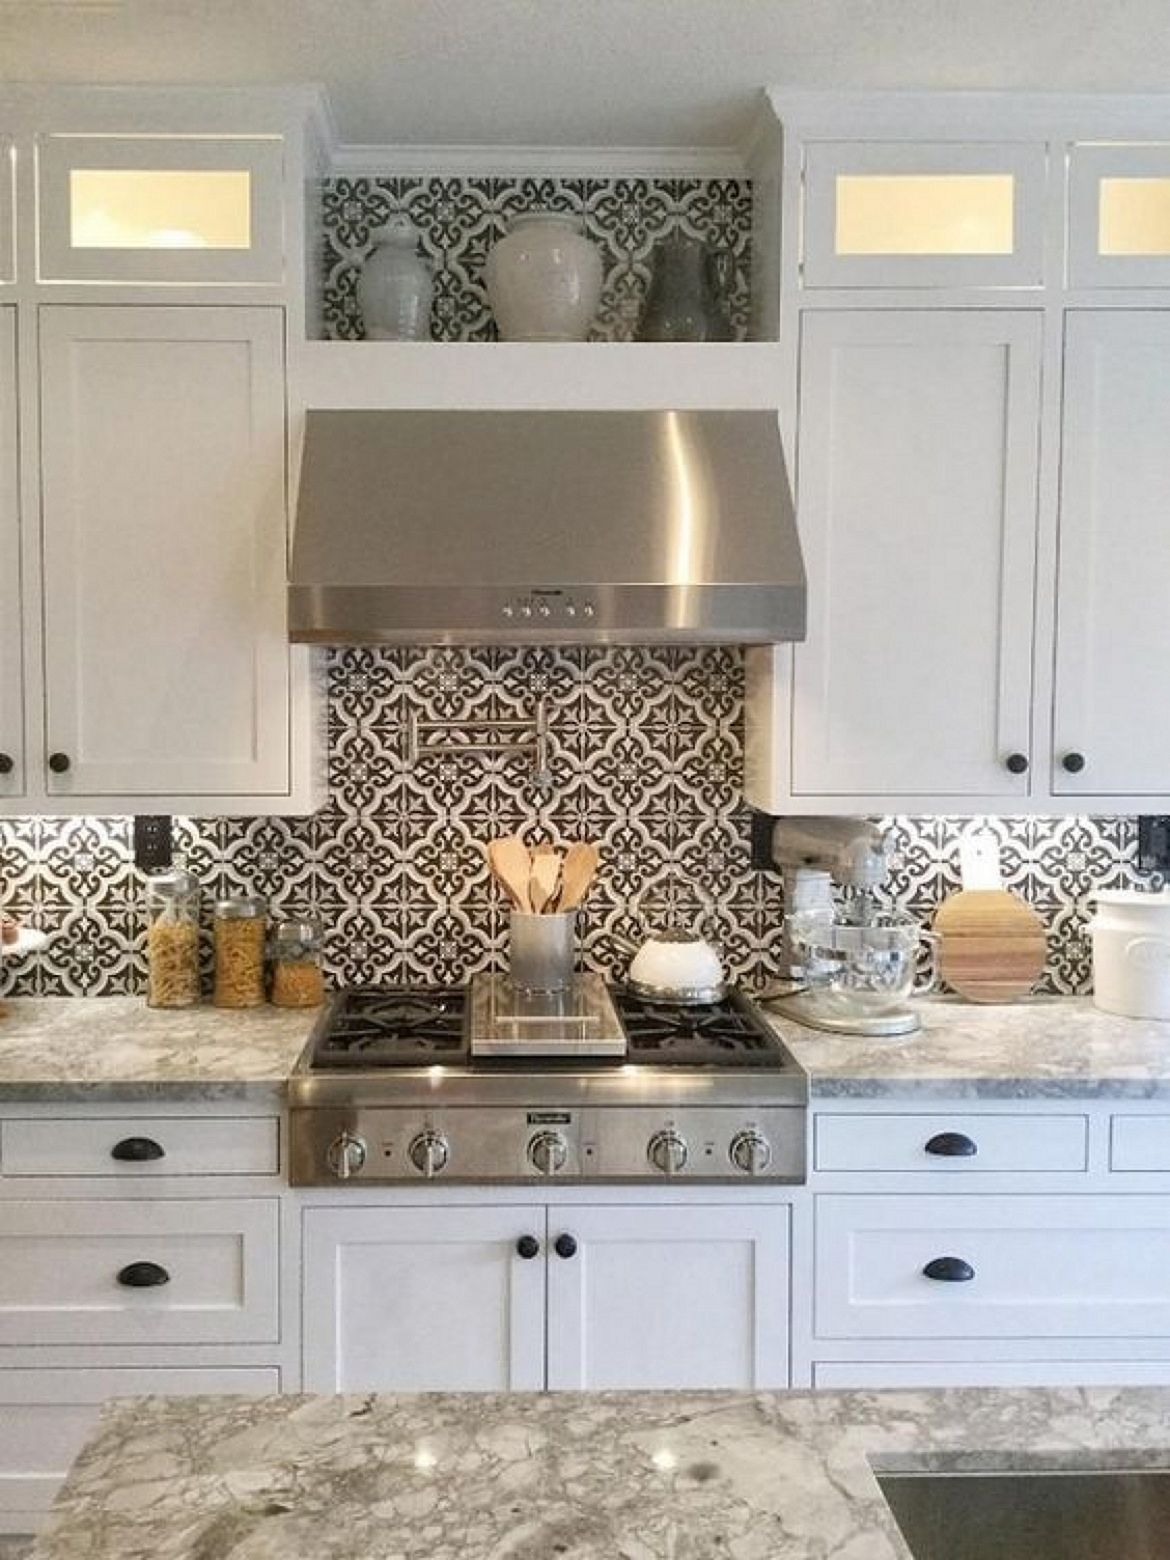 Incredible Backsplash Kitchen Ideas In 2020 Kitchen Backsplash